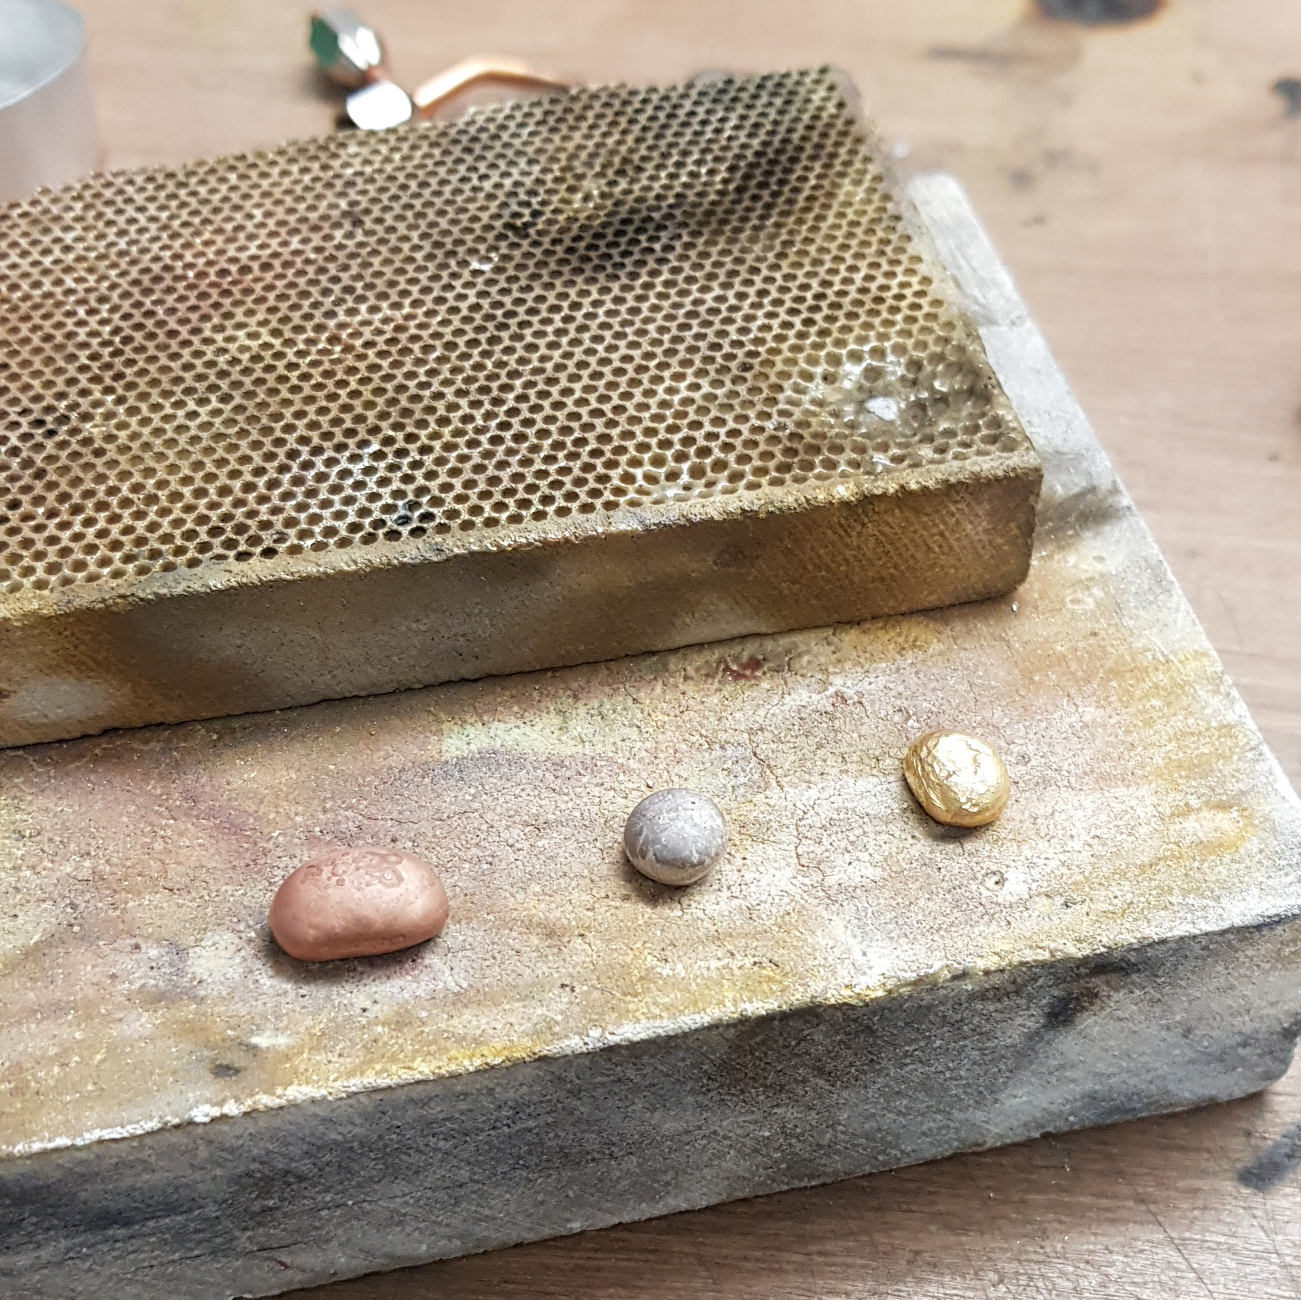 Three ingots of white, red, and yellow gold on a soldering block in the workshop.